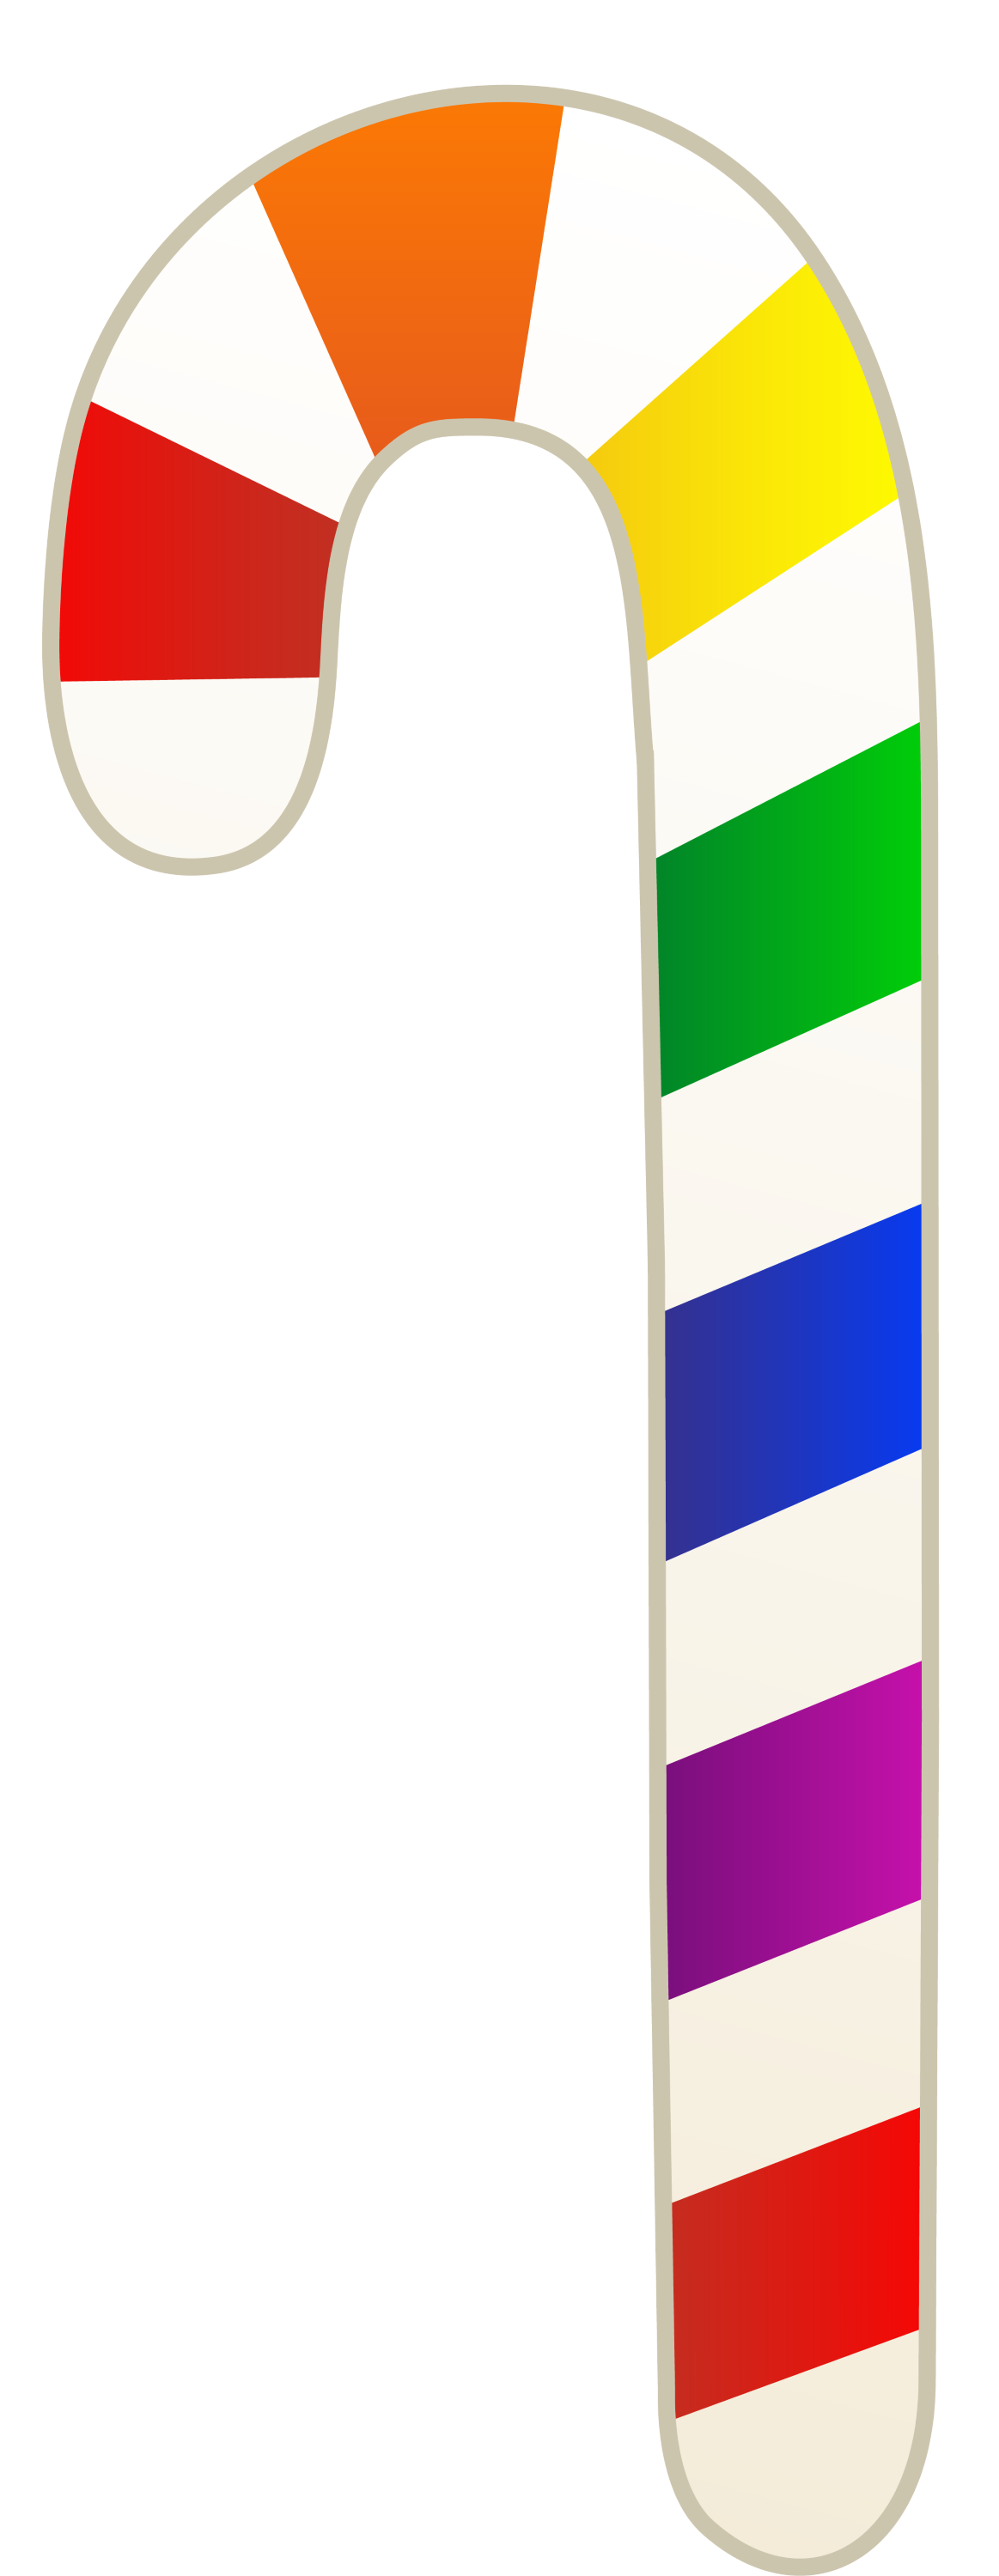 Candy cane border  rainbow colors candy cane